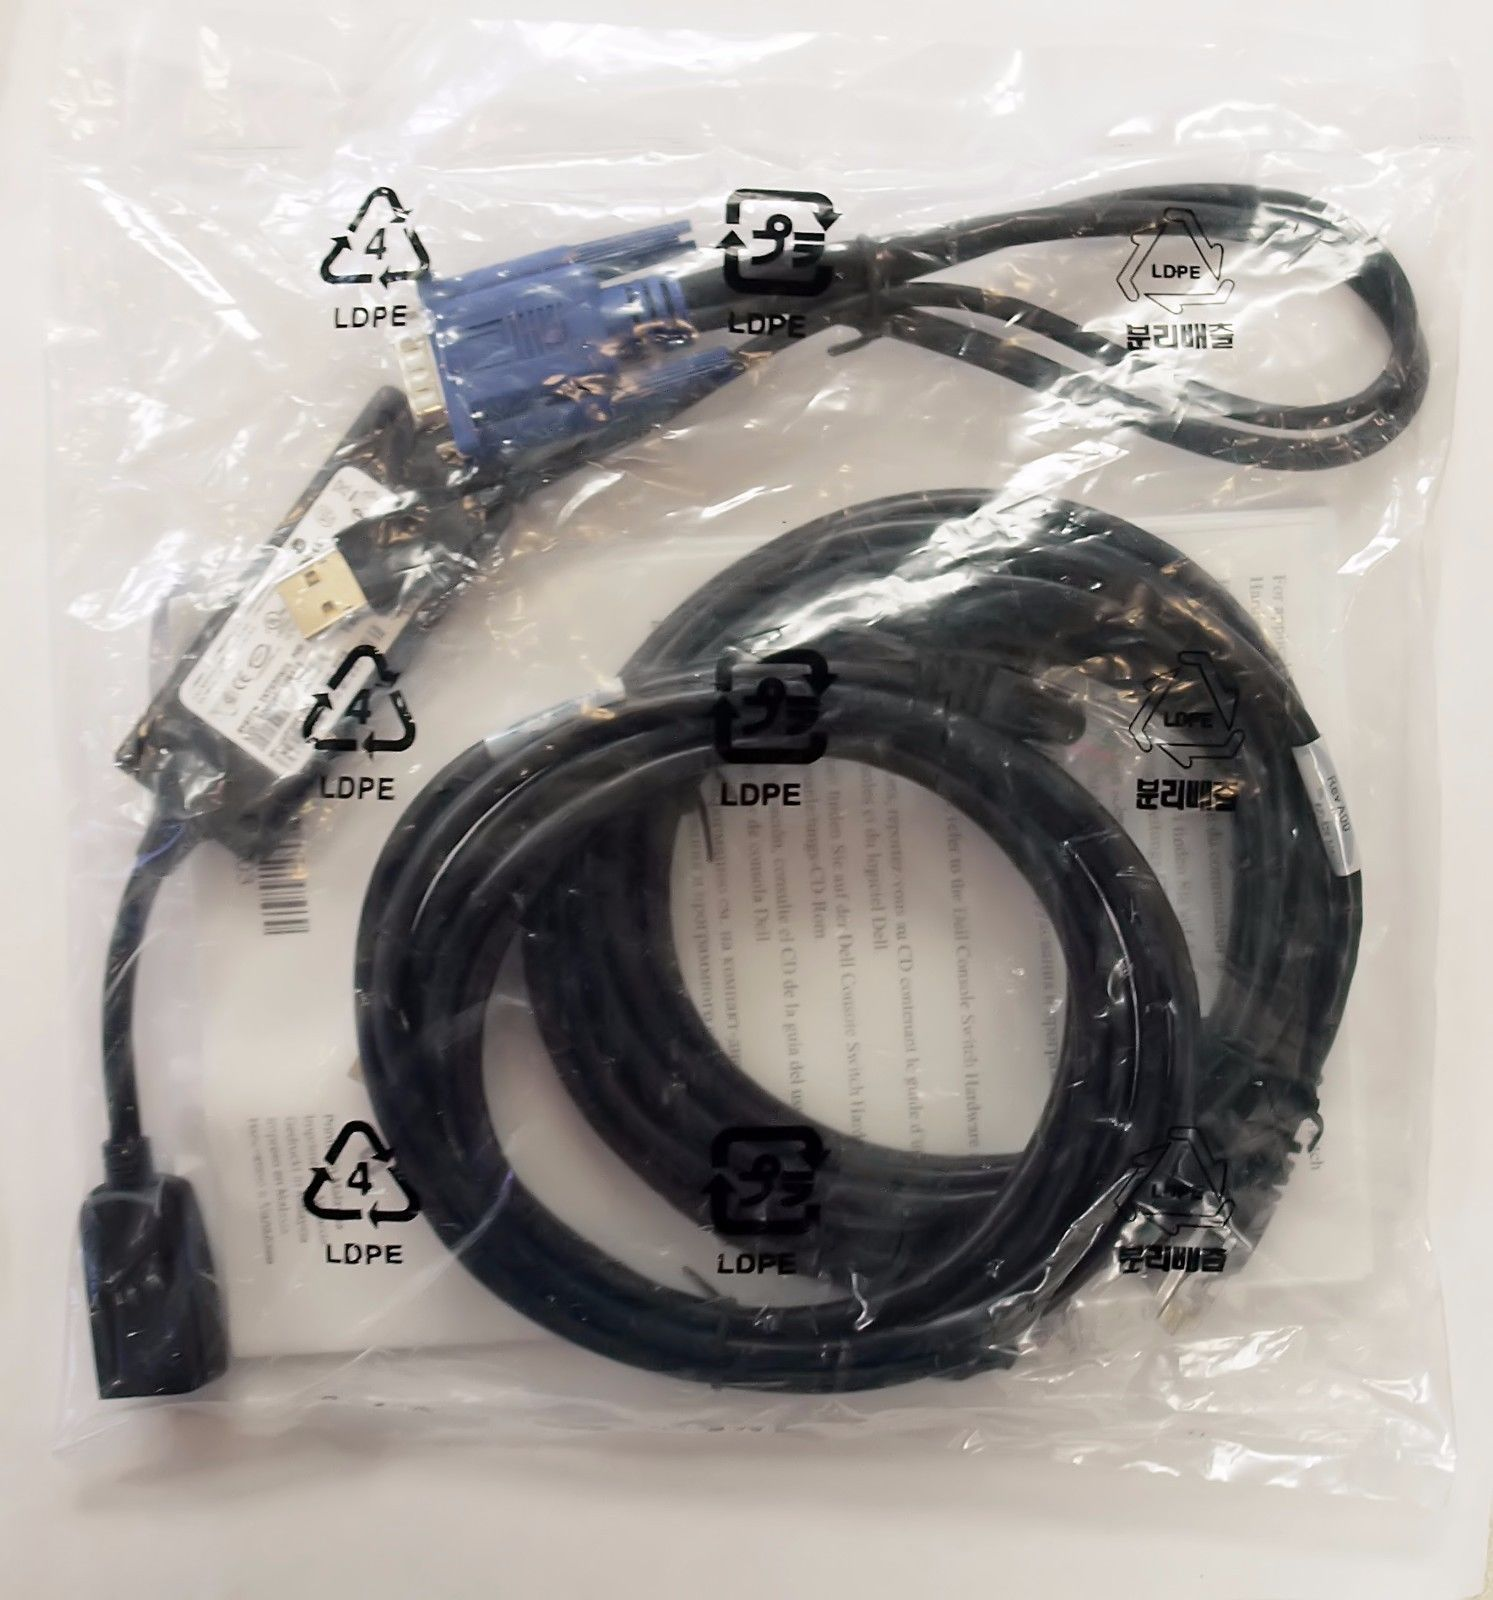 Kvm Cables 182095 New Dell 0uf366 0hg526 Usb Kvm Switch Cable Module Kit Pod Sip 2161ds 2160as Buy It Now Only 27 On Ebay Cables Swit Usb Switch Cable